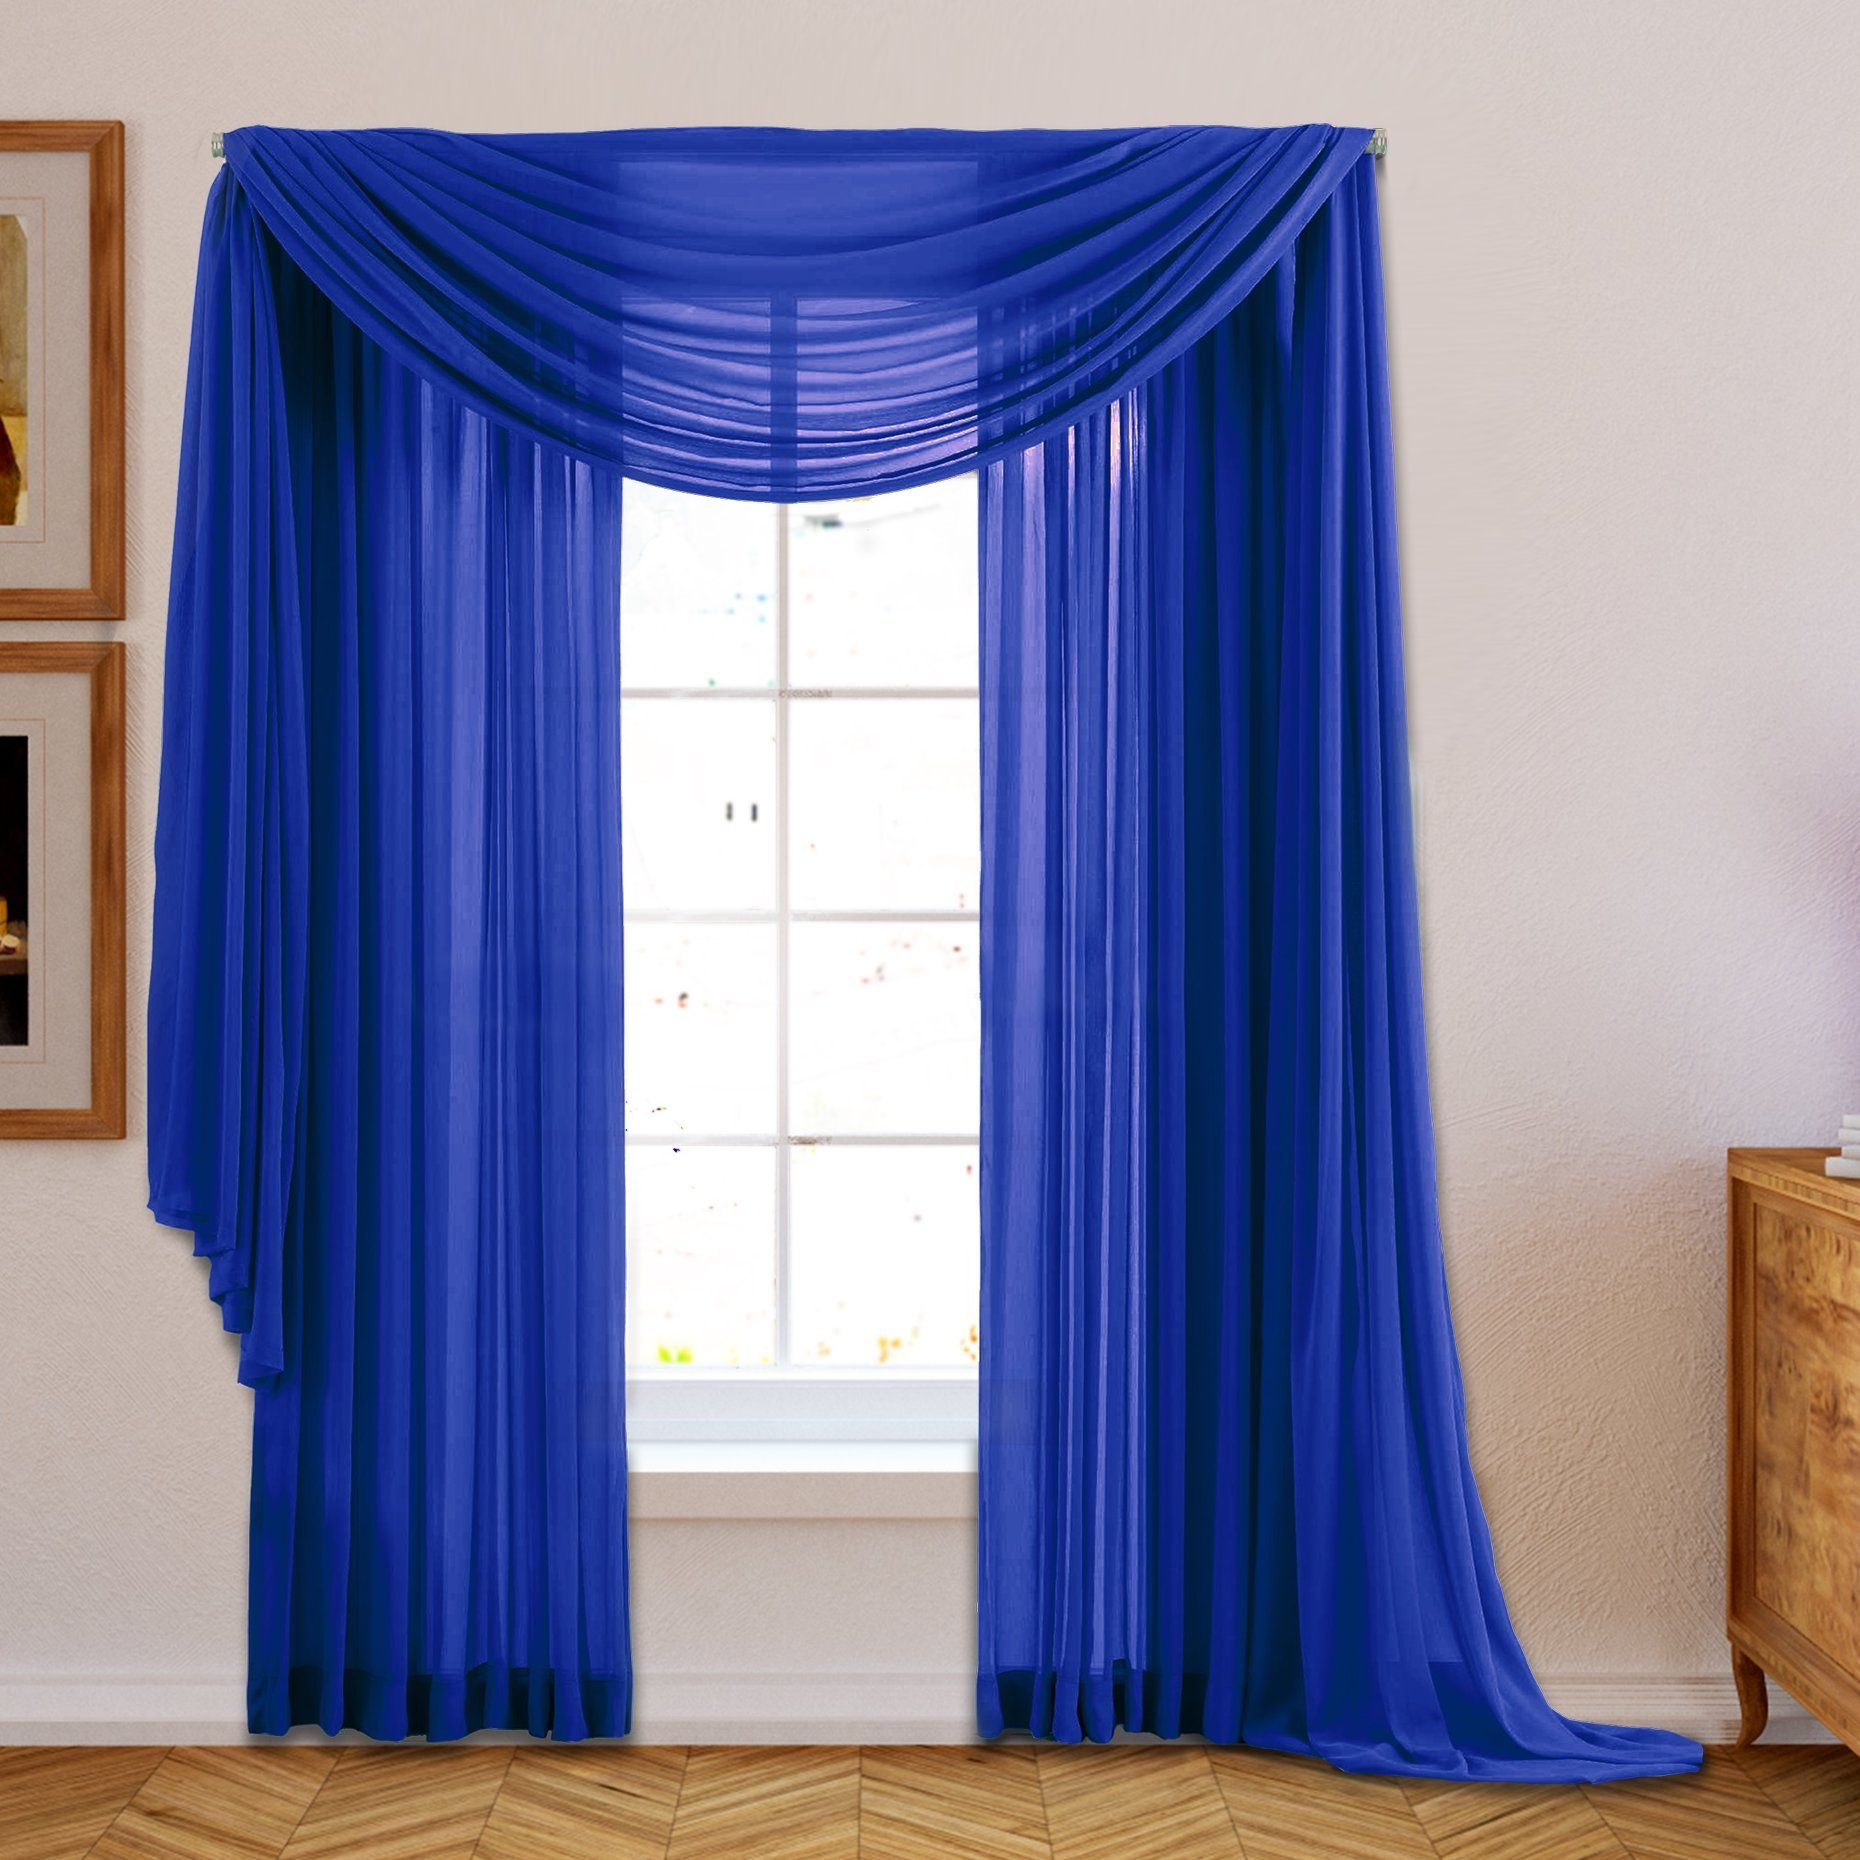 Conelley Sheer Curtain Panels Curtains Drapes Curtains